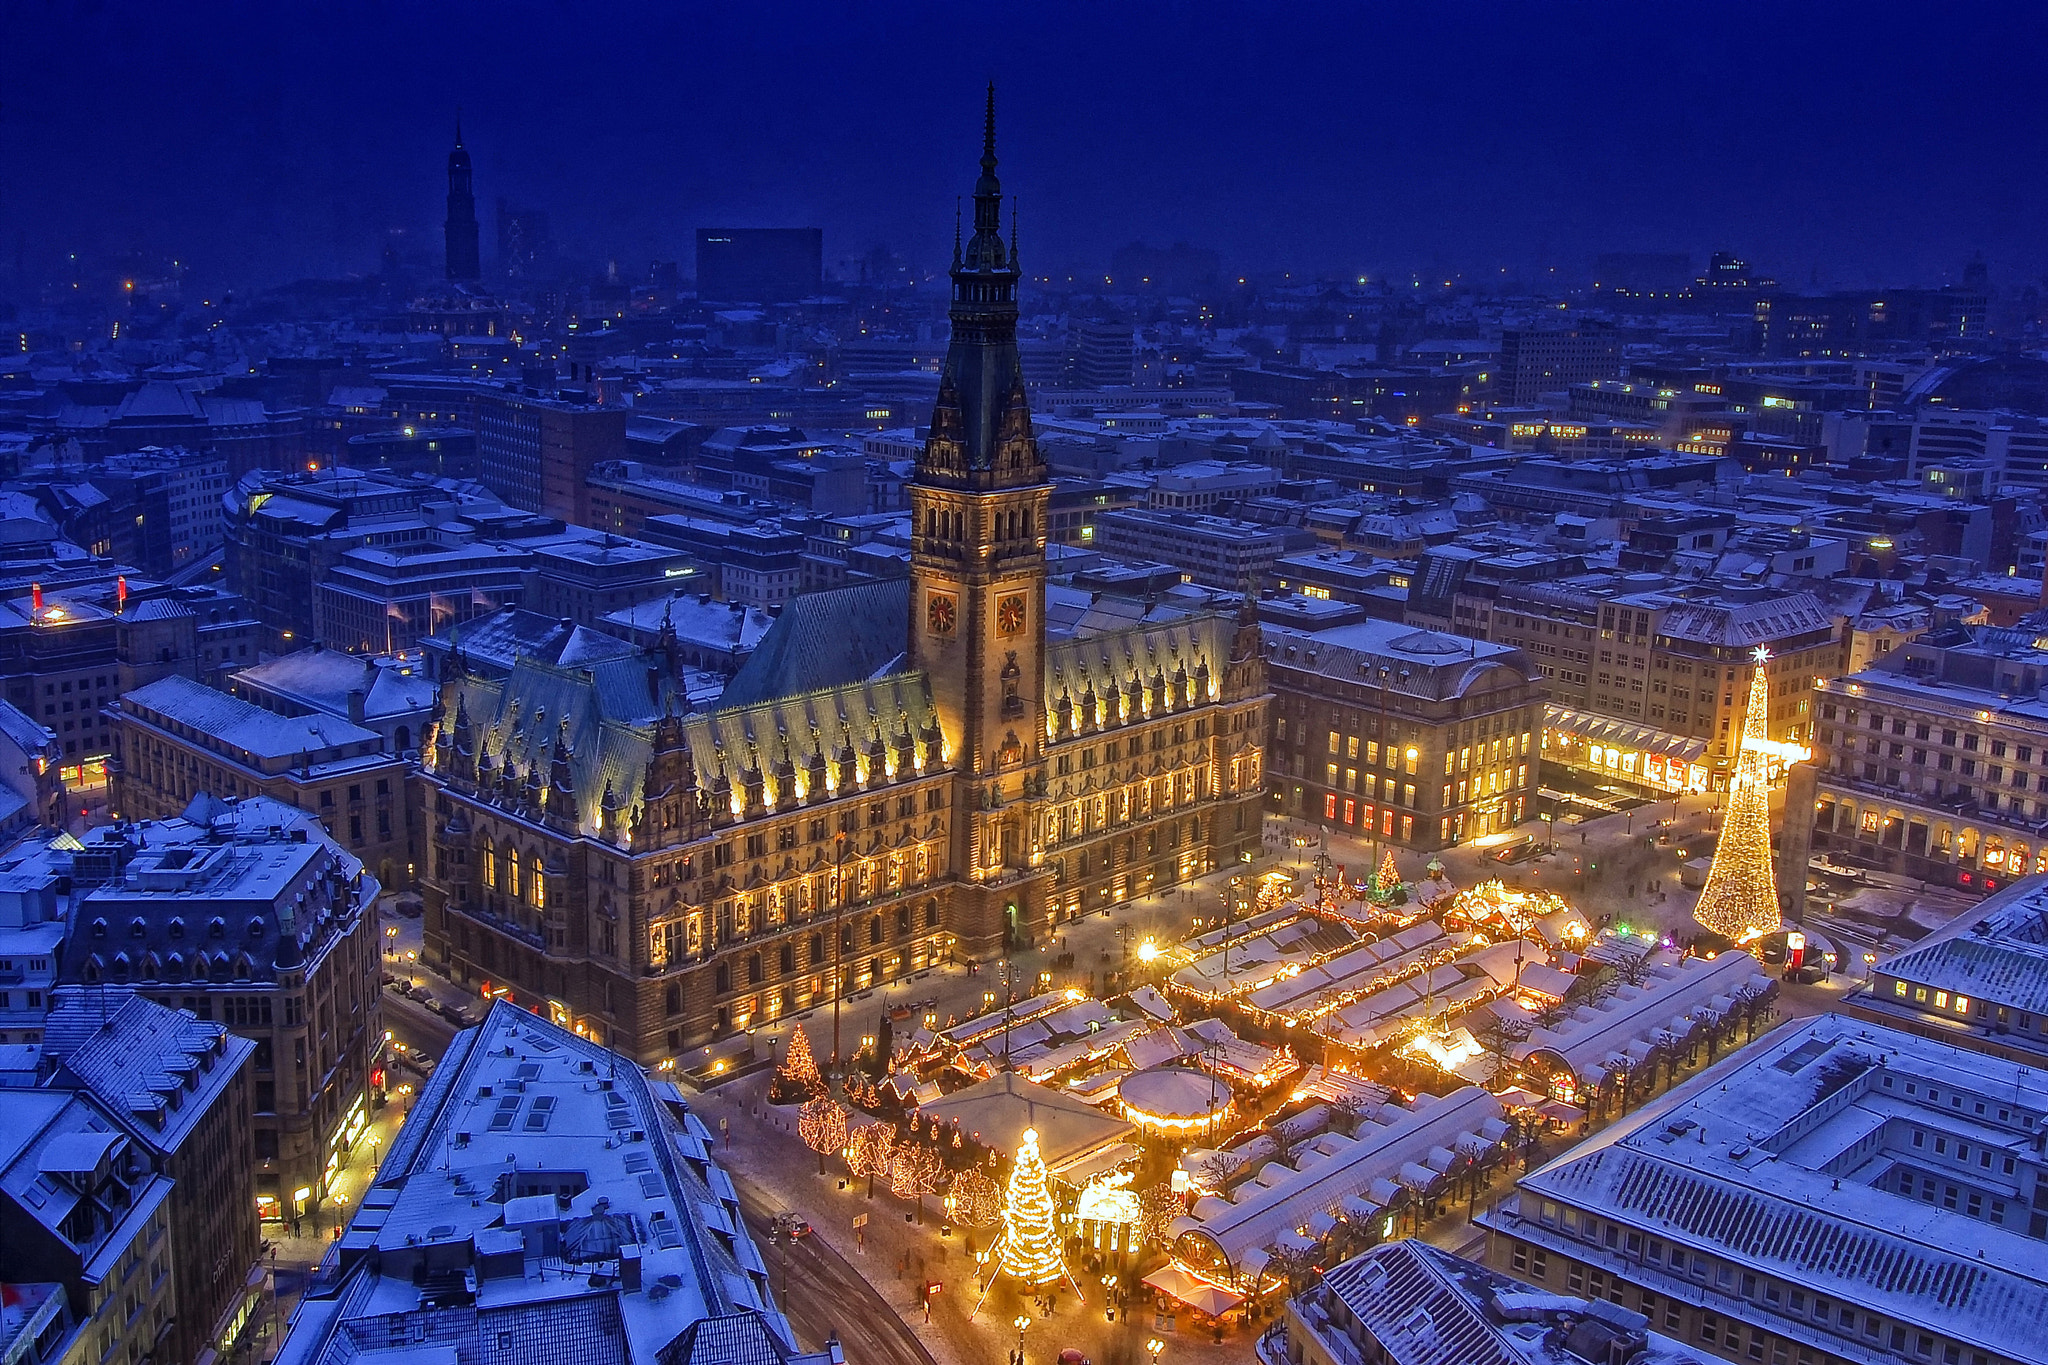 Photograph Hamburg Christmas Scenery by Dipta Nandana on 500px